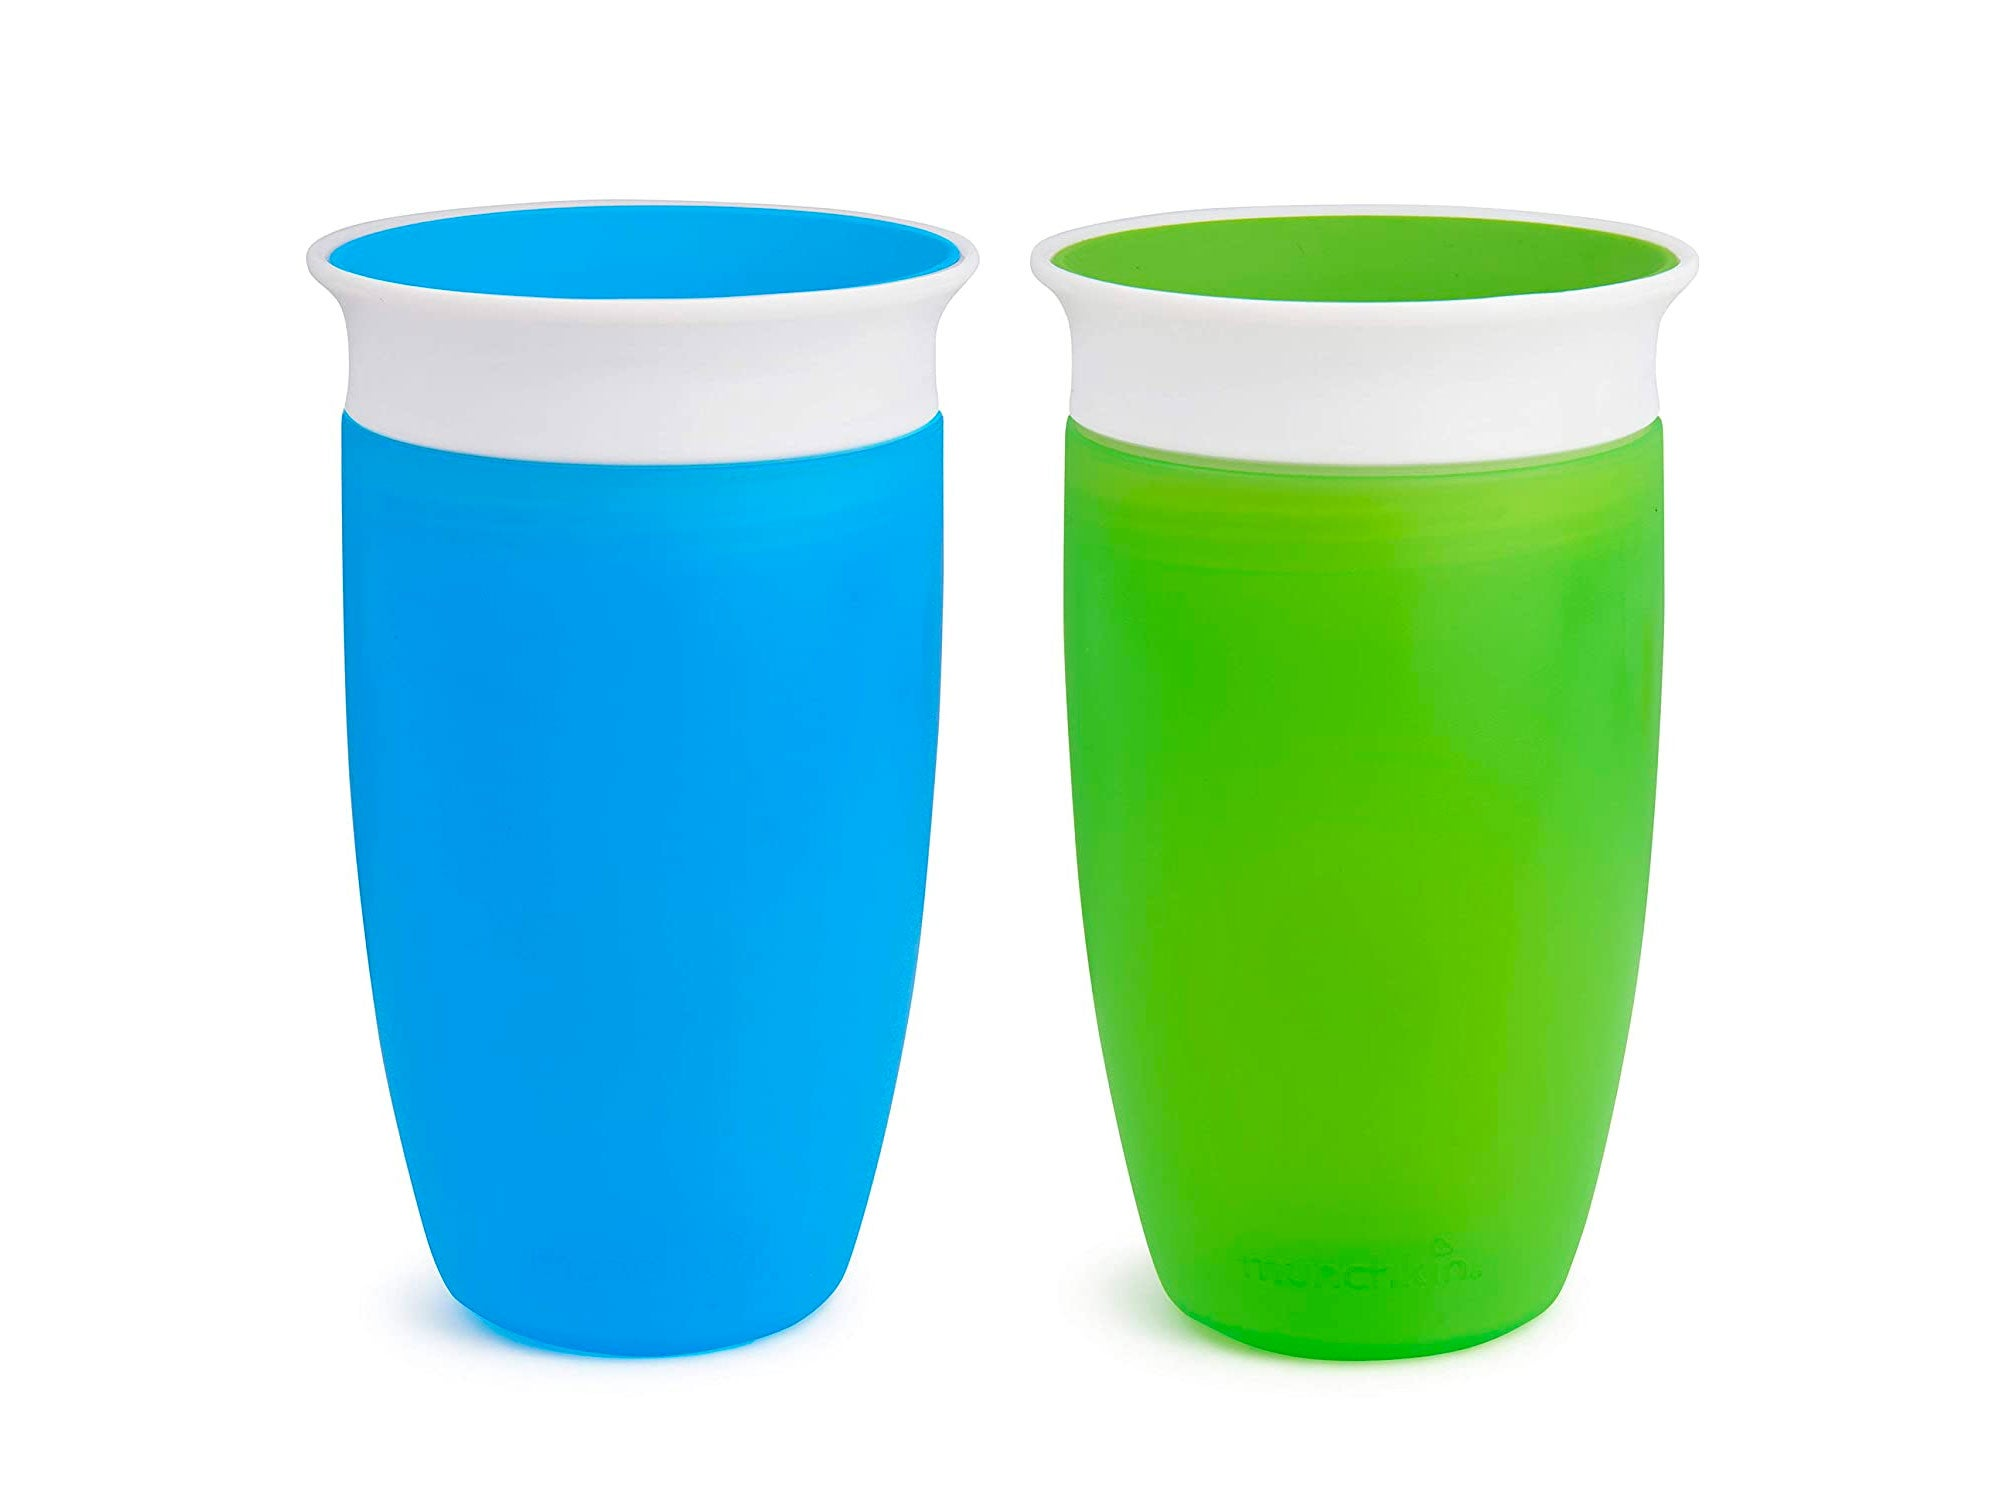 Munchkin Miracle 360 Sippy Cup, Green/Blue, 10 Oz, 2 Count